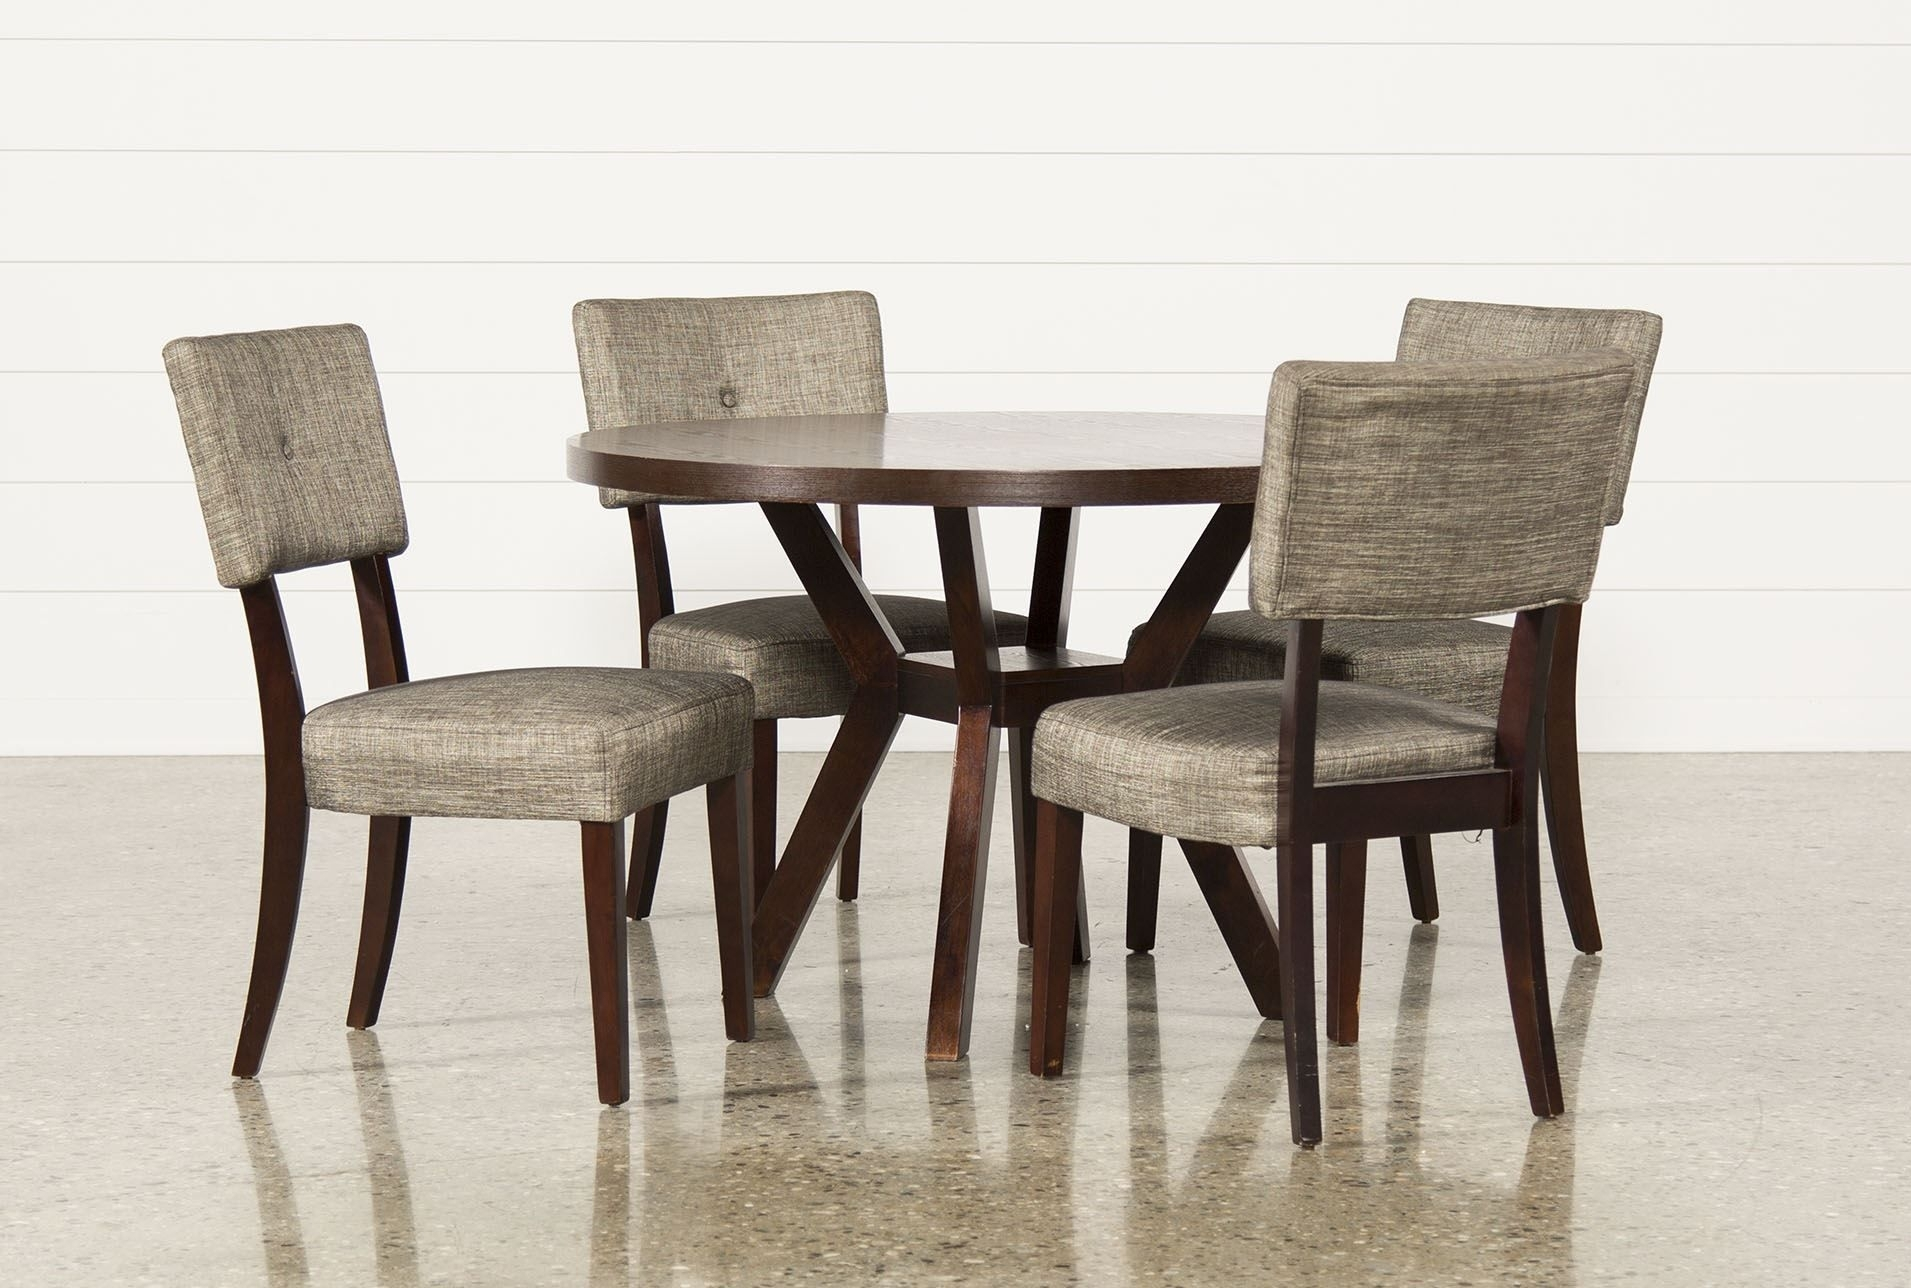 Macie 5 Piece Round Dining Set – Living Spaces | Furniture With Regard To Latest Caden 5 Piece Round Dining Sets (Photo 2 of 20)